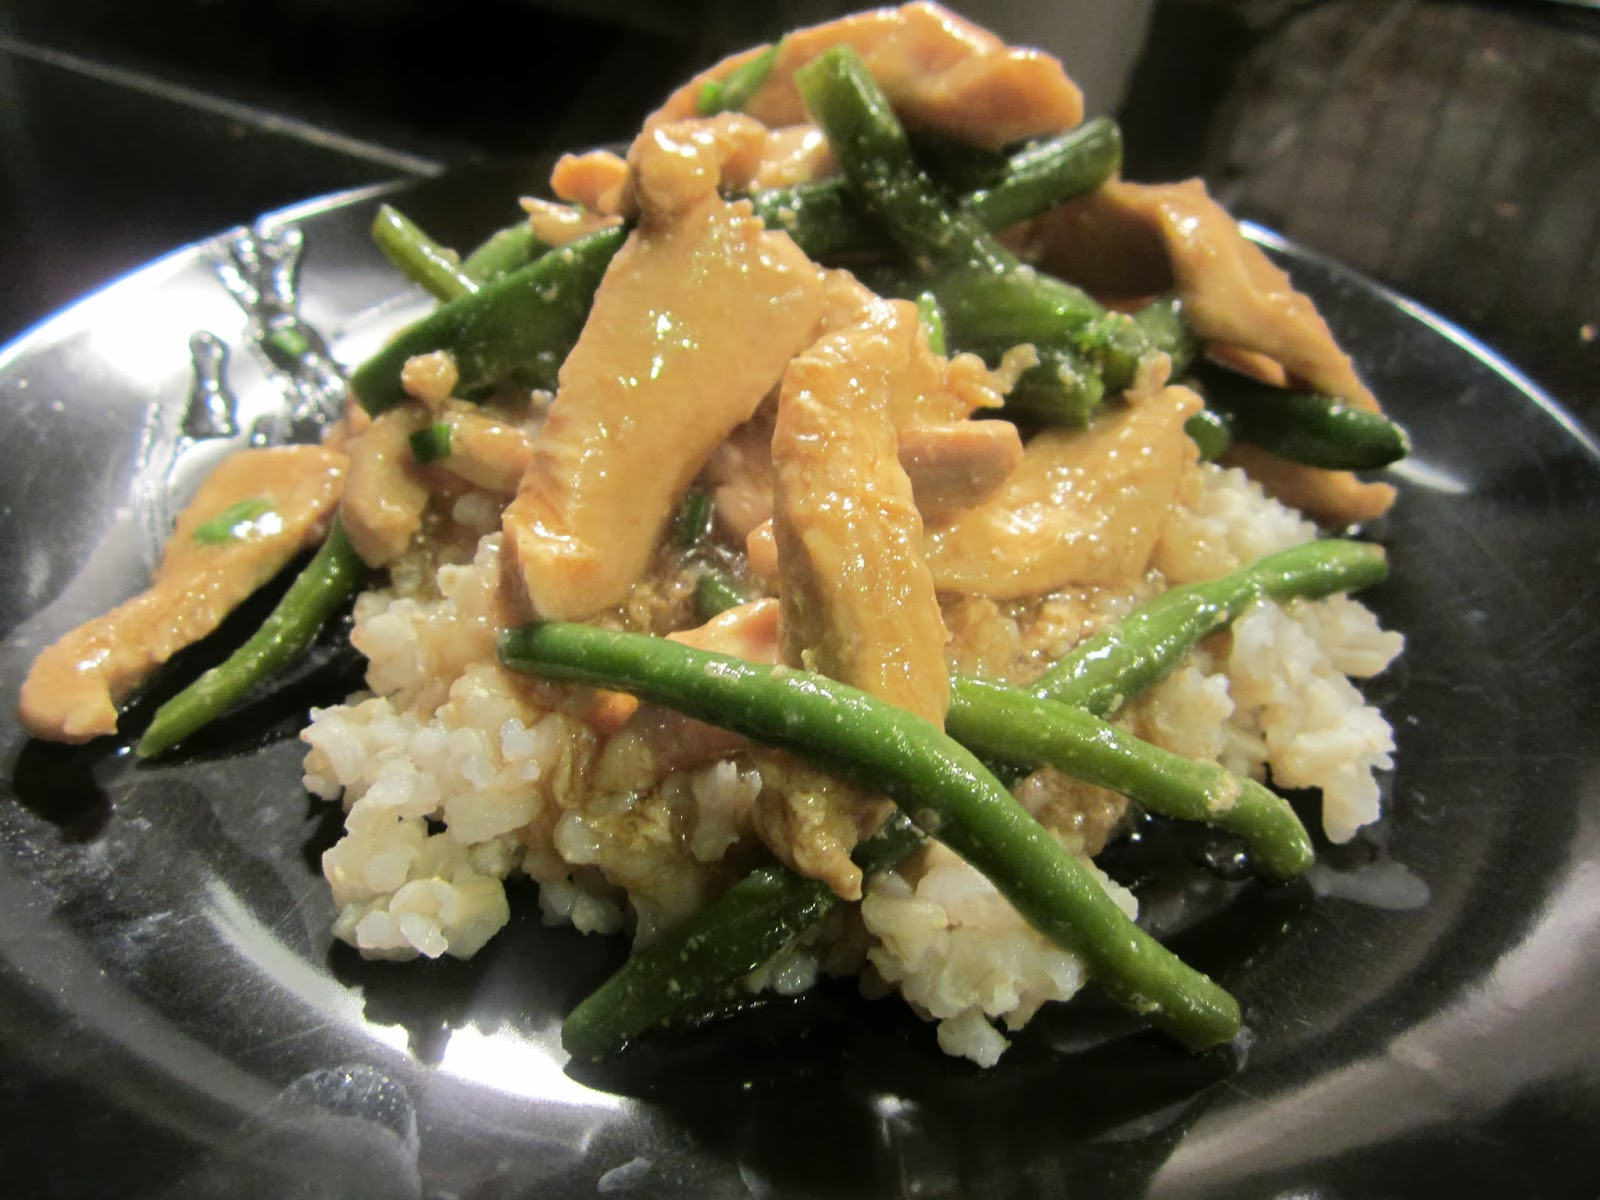 Going gluten free chinese chicken green beans chinese chicken green beans the first time i went gluten free one of the biggest things i lamented was chinese food i could still do it forumfinder Image collections